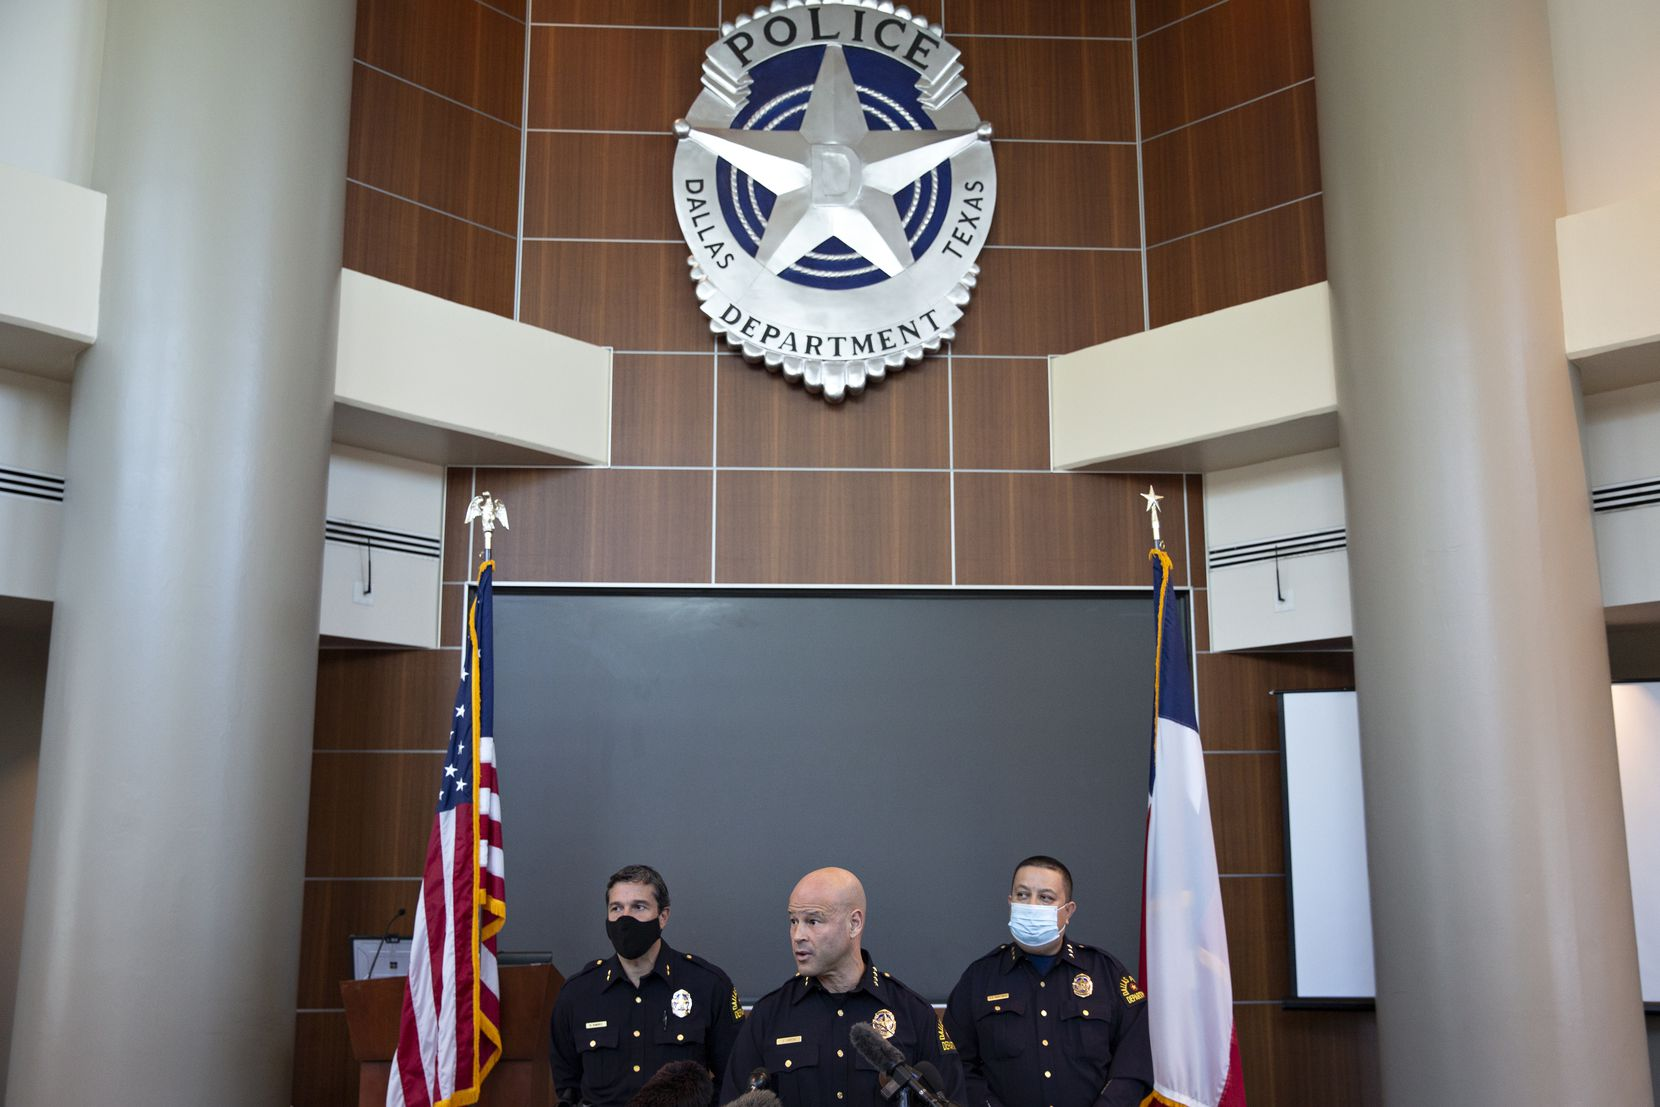 Dallas Police Chief Eddie Garcia speaks at a press conference in April to discuss the release of former Dallas police officer Bryan Riser.